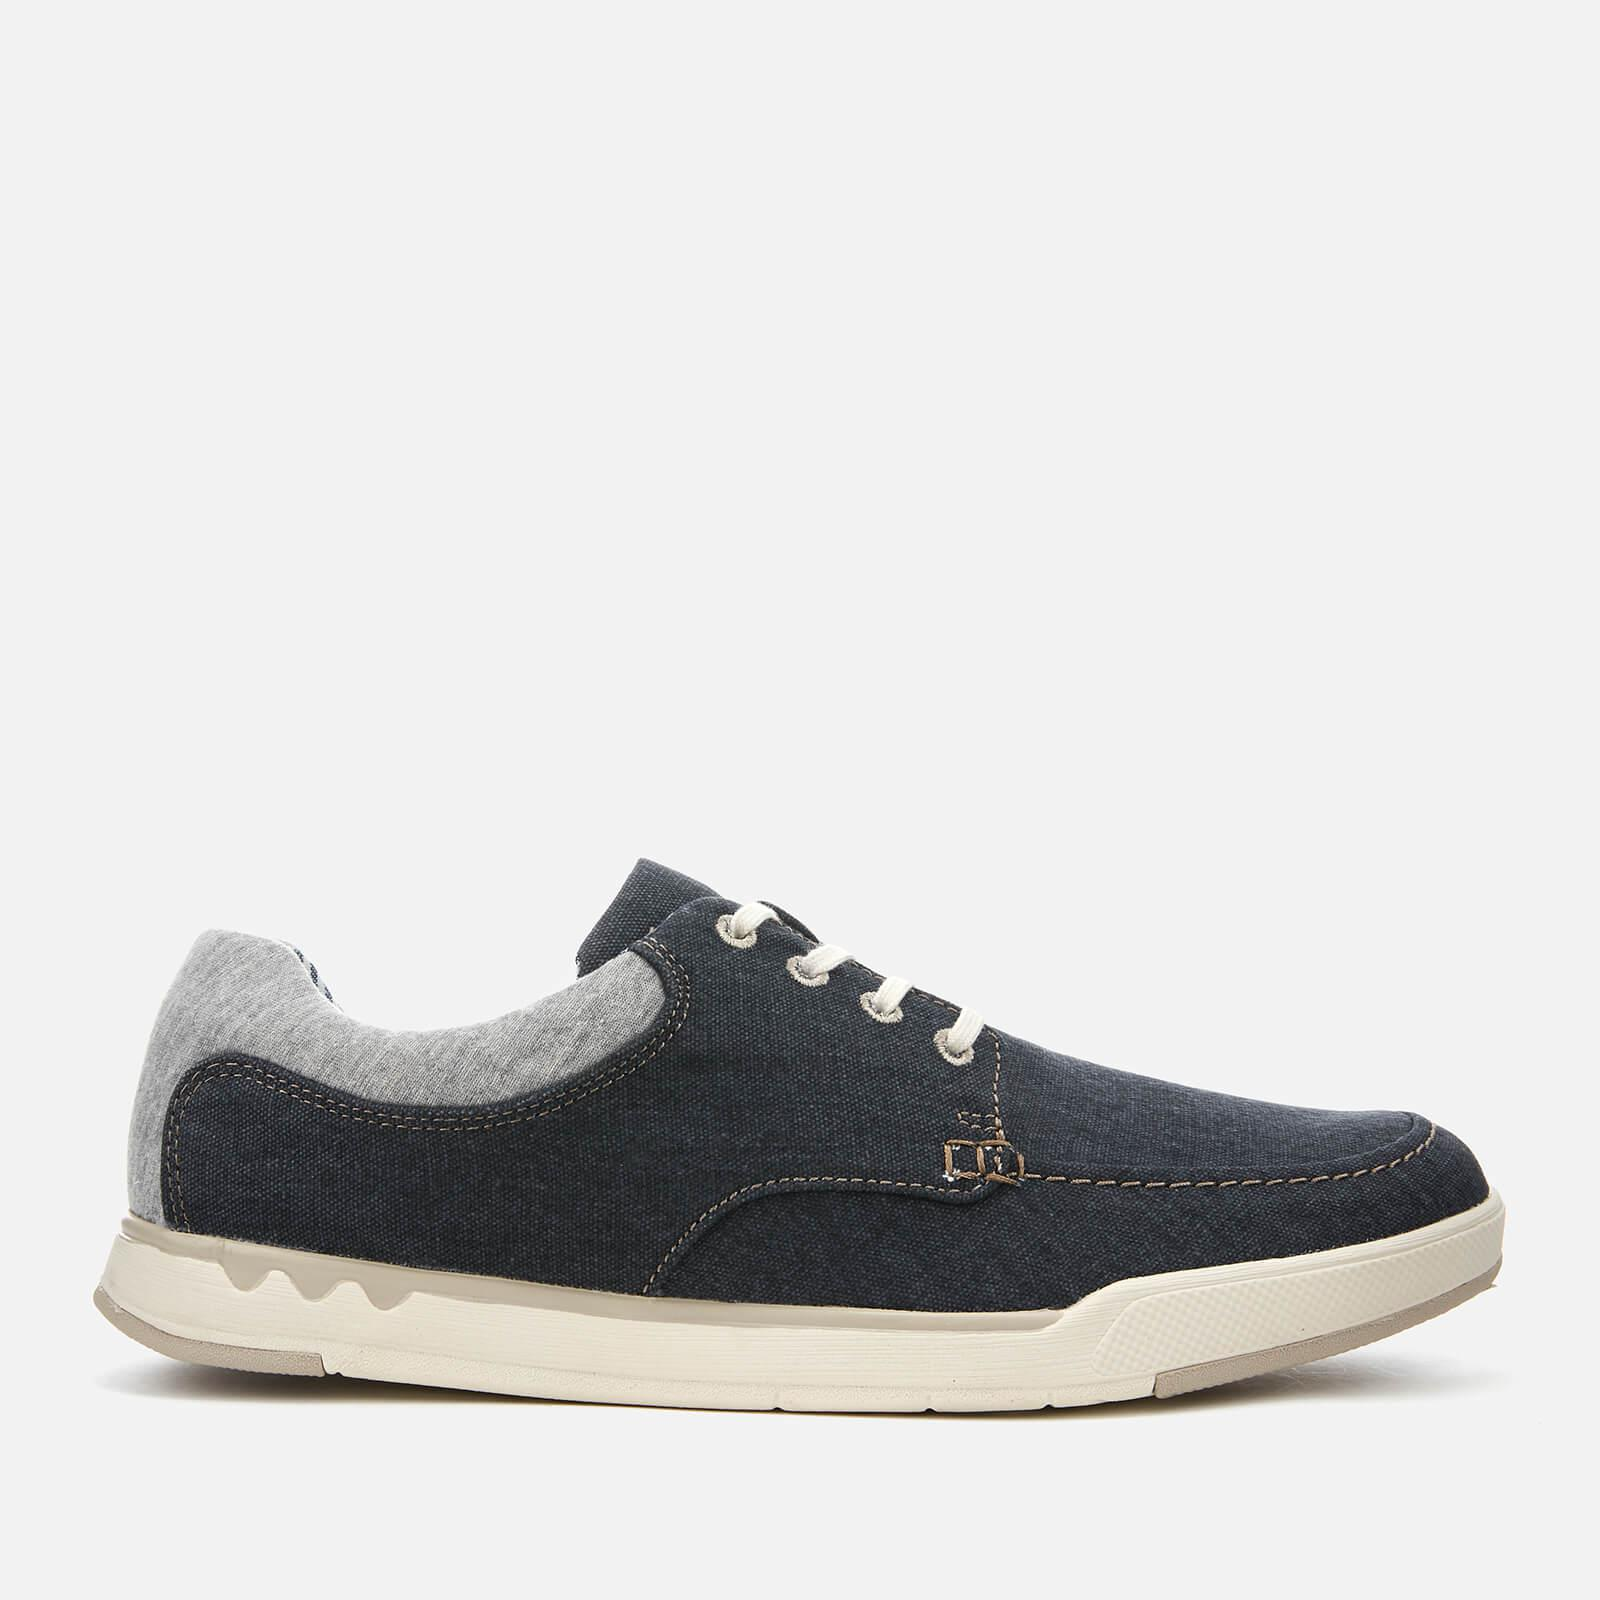 Discount Nicekicks Buy Cheap Websites Clarks Step Isle Lace Sneaker(Men's) -Sand Canvas Really Cheap Countdown Package Cheap Price 72PP7Rv7